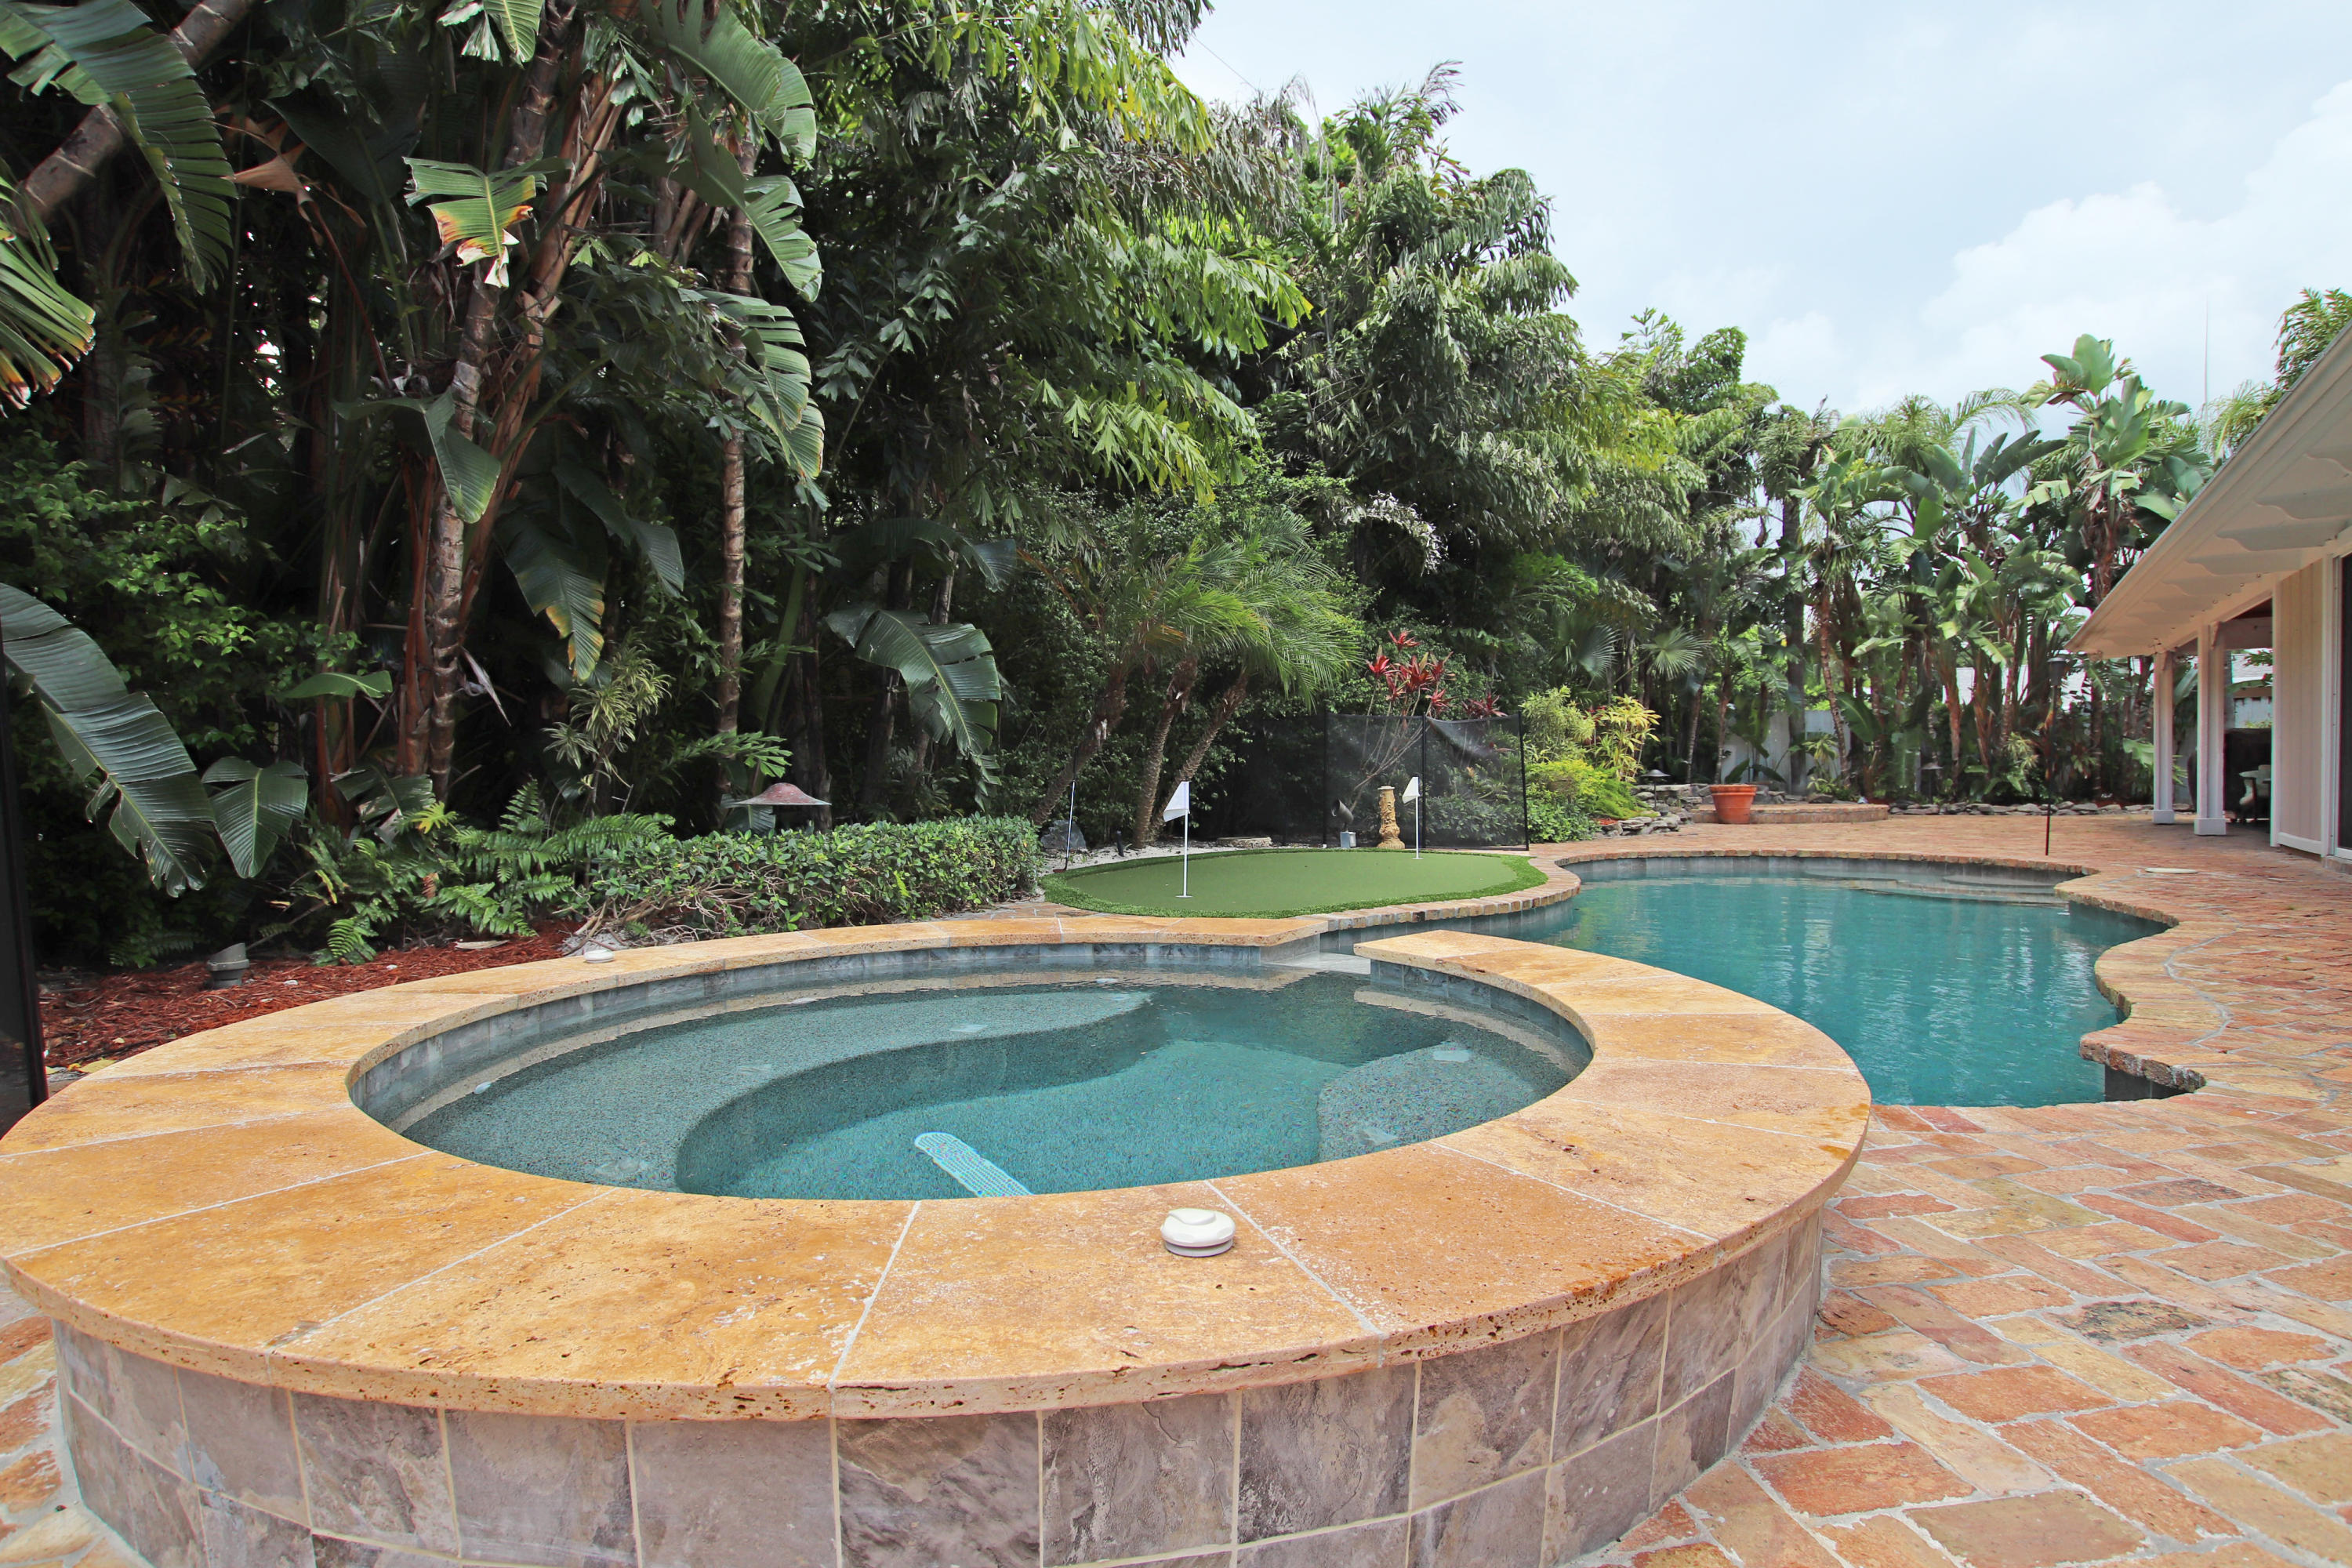 WENDIMERE HEIGHTS TEQUESTA